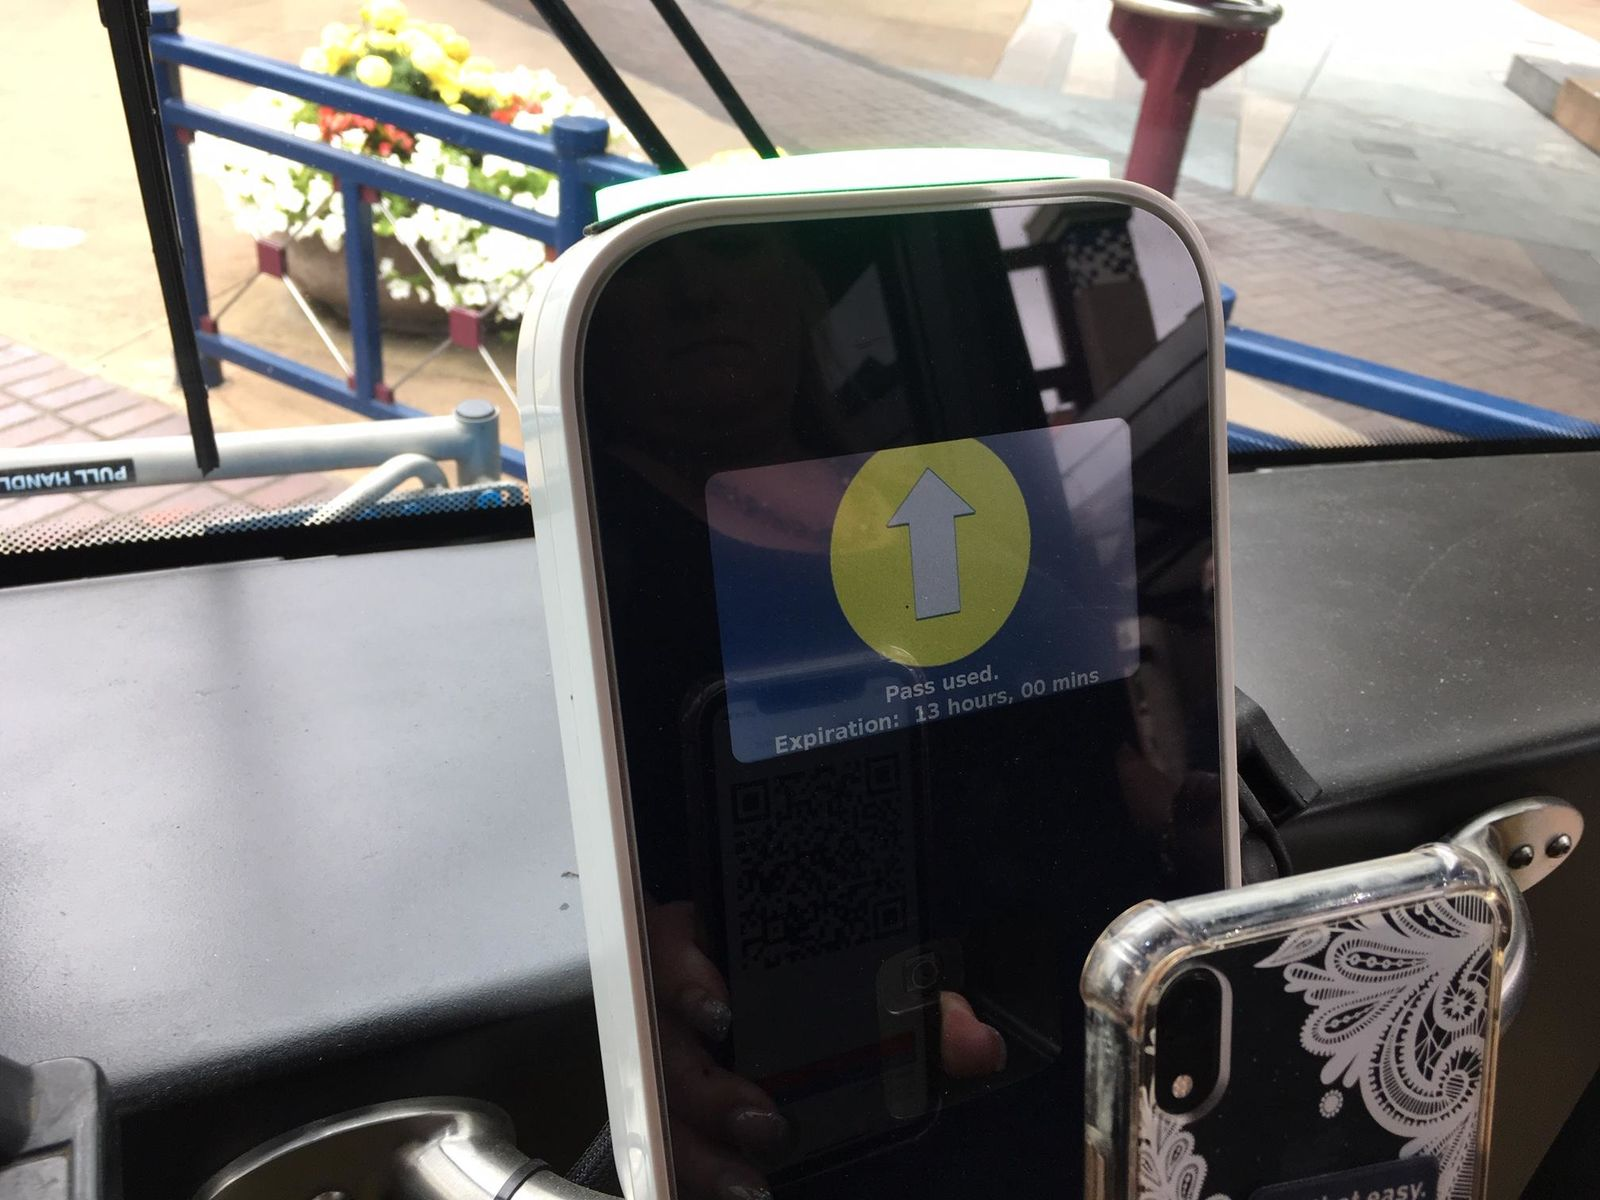 LTD to usher in new electronic bus pass over coming months